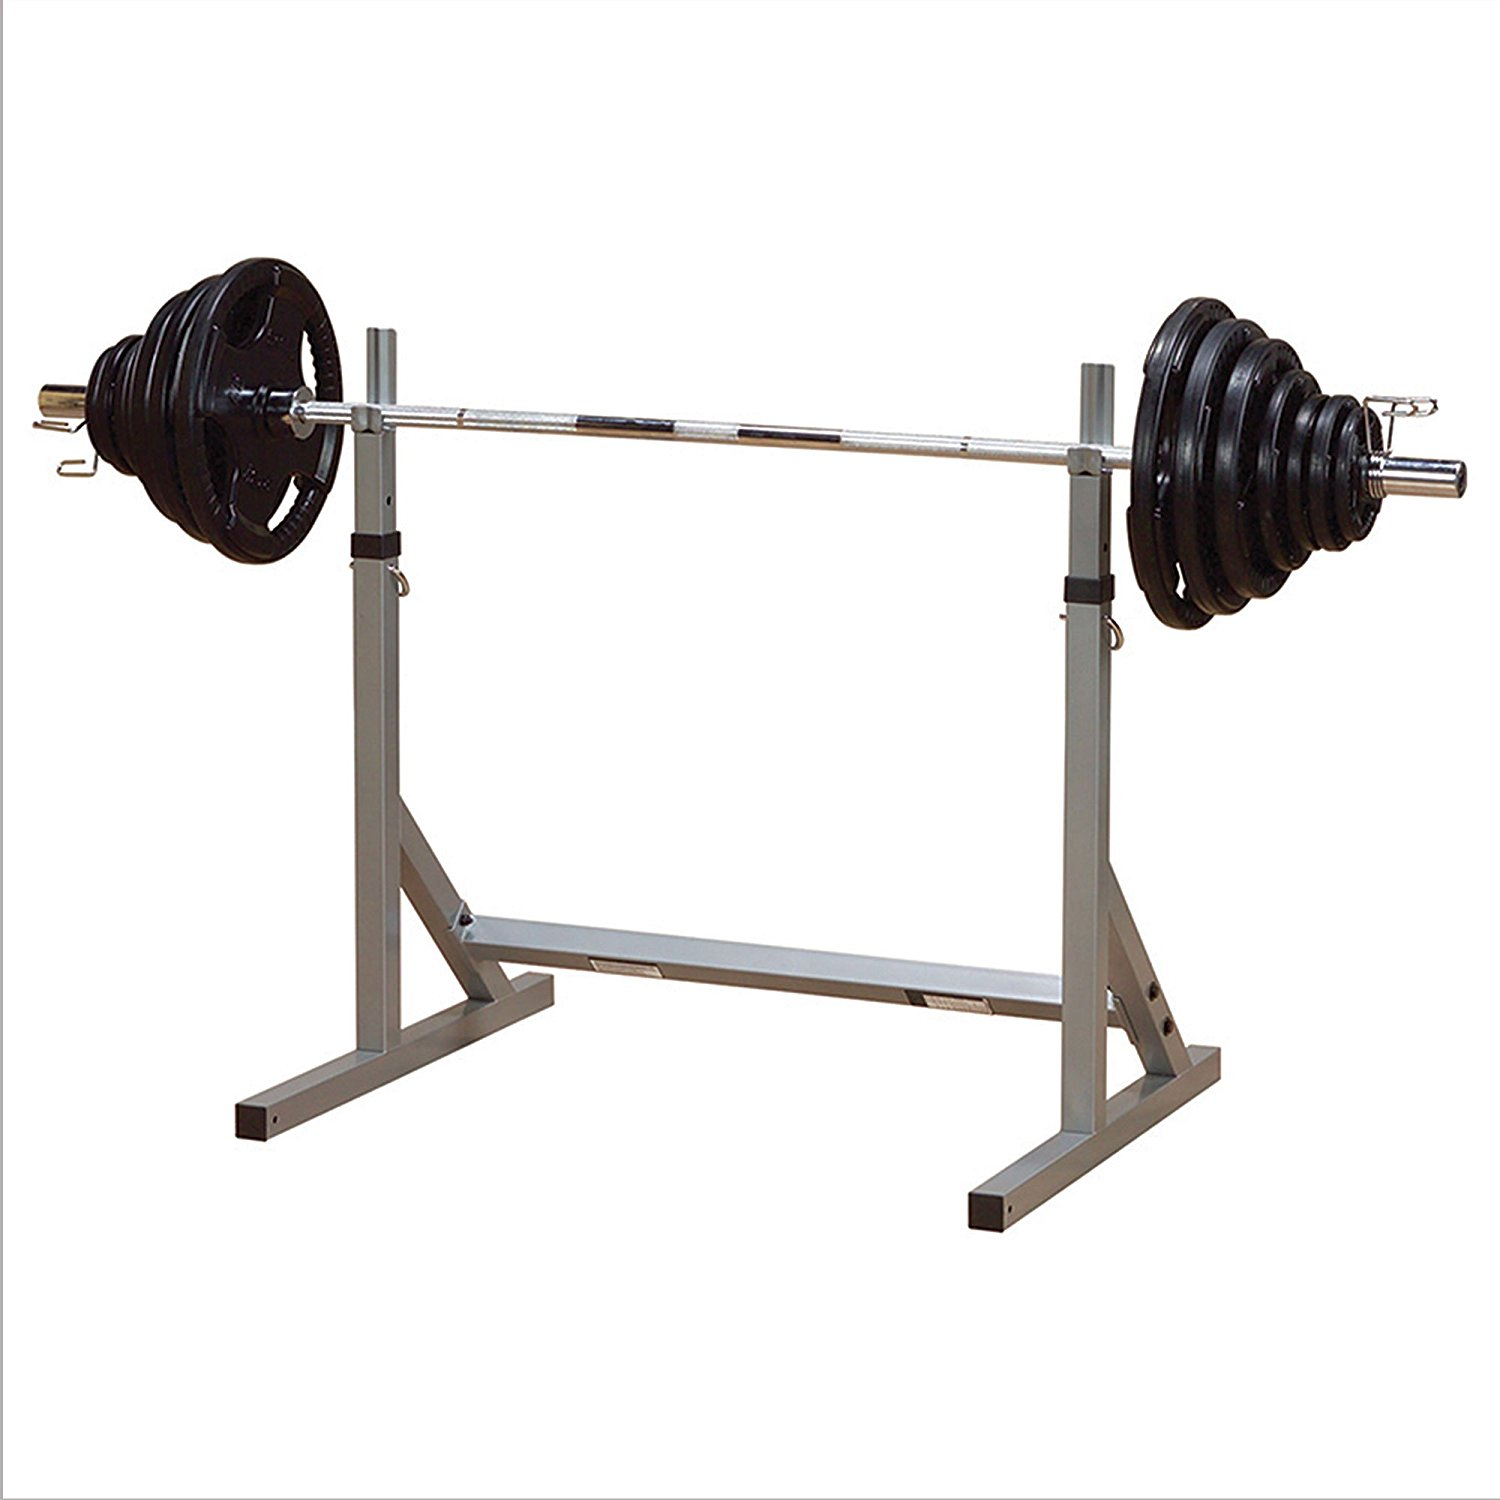 Best squat racks with bench press 2018 for A squat rack